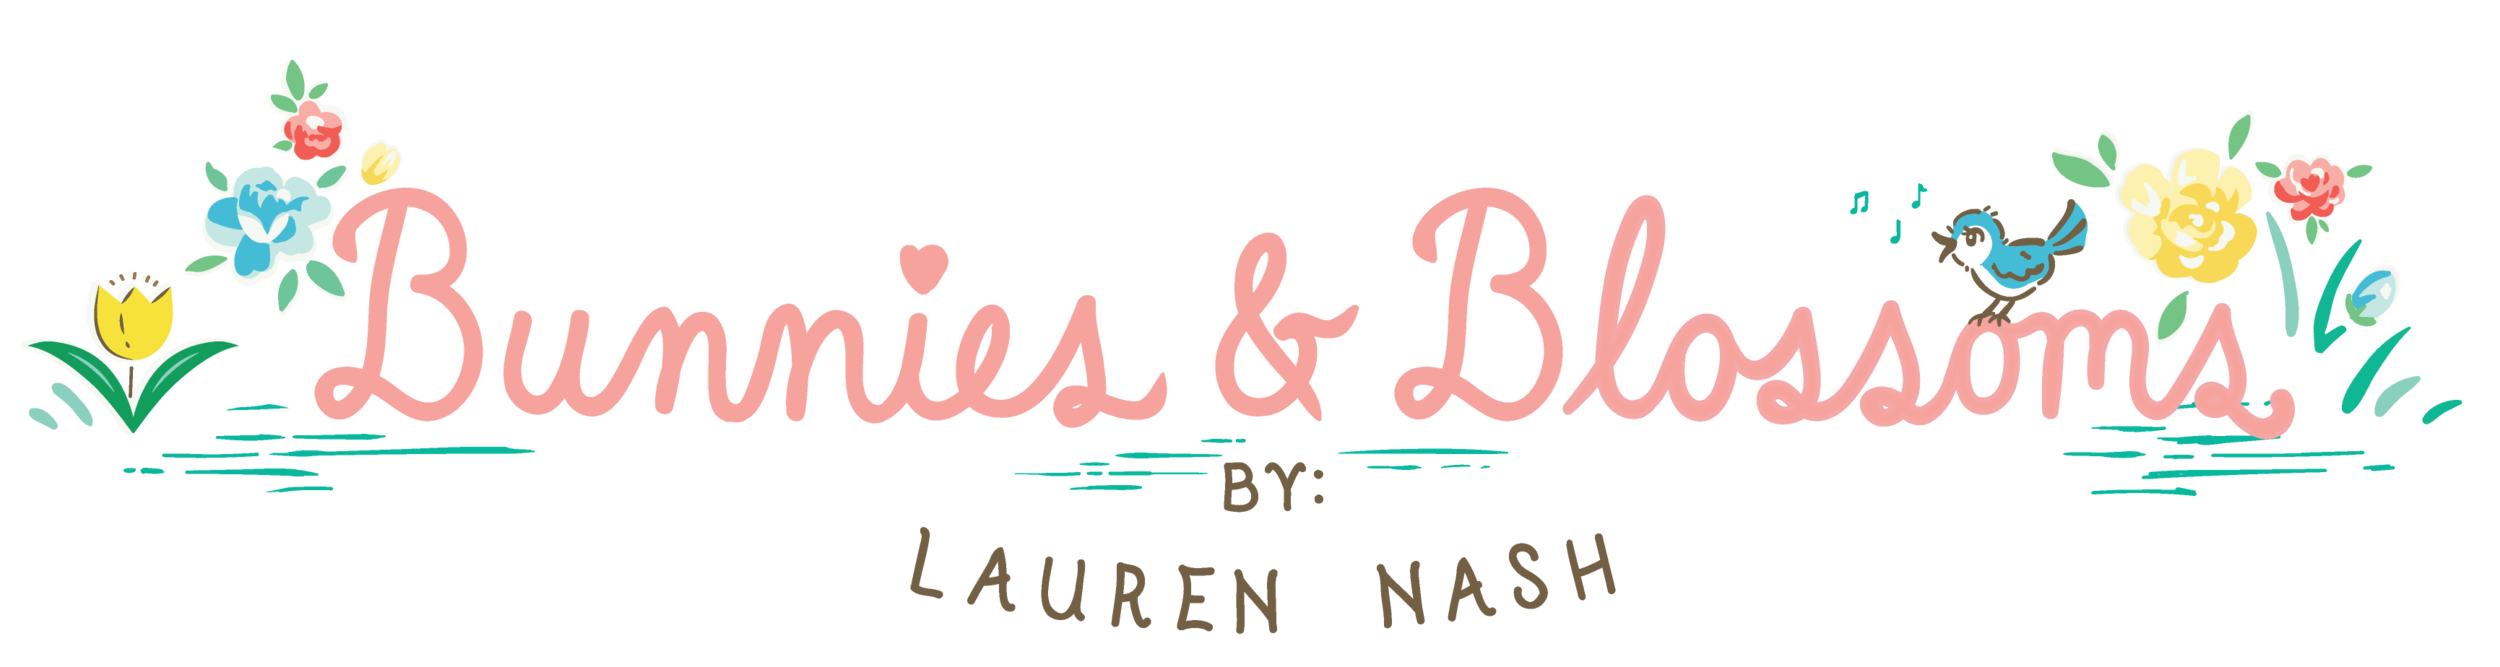 Bunnies&Blossoms_Logo_Without_Background.png